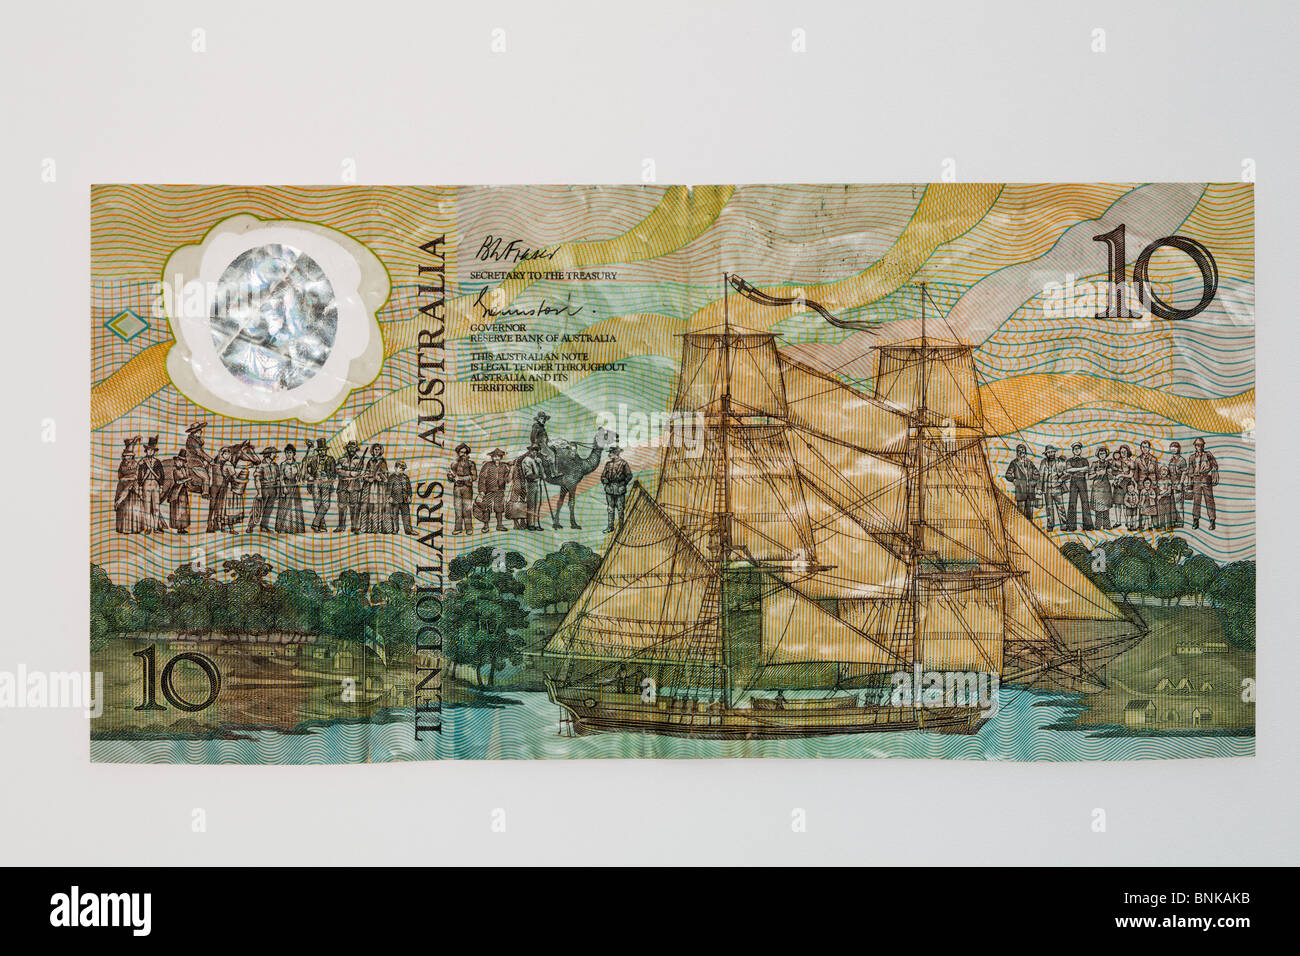 1988 commemorative 10 dollar polymer note - obverse - Stock Image